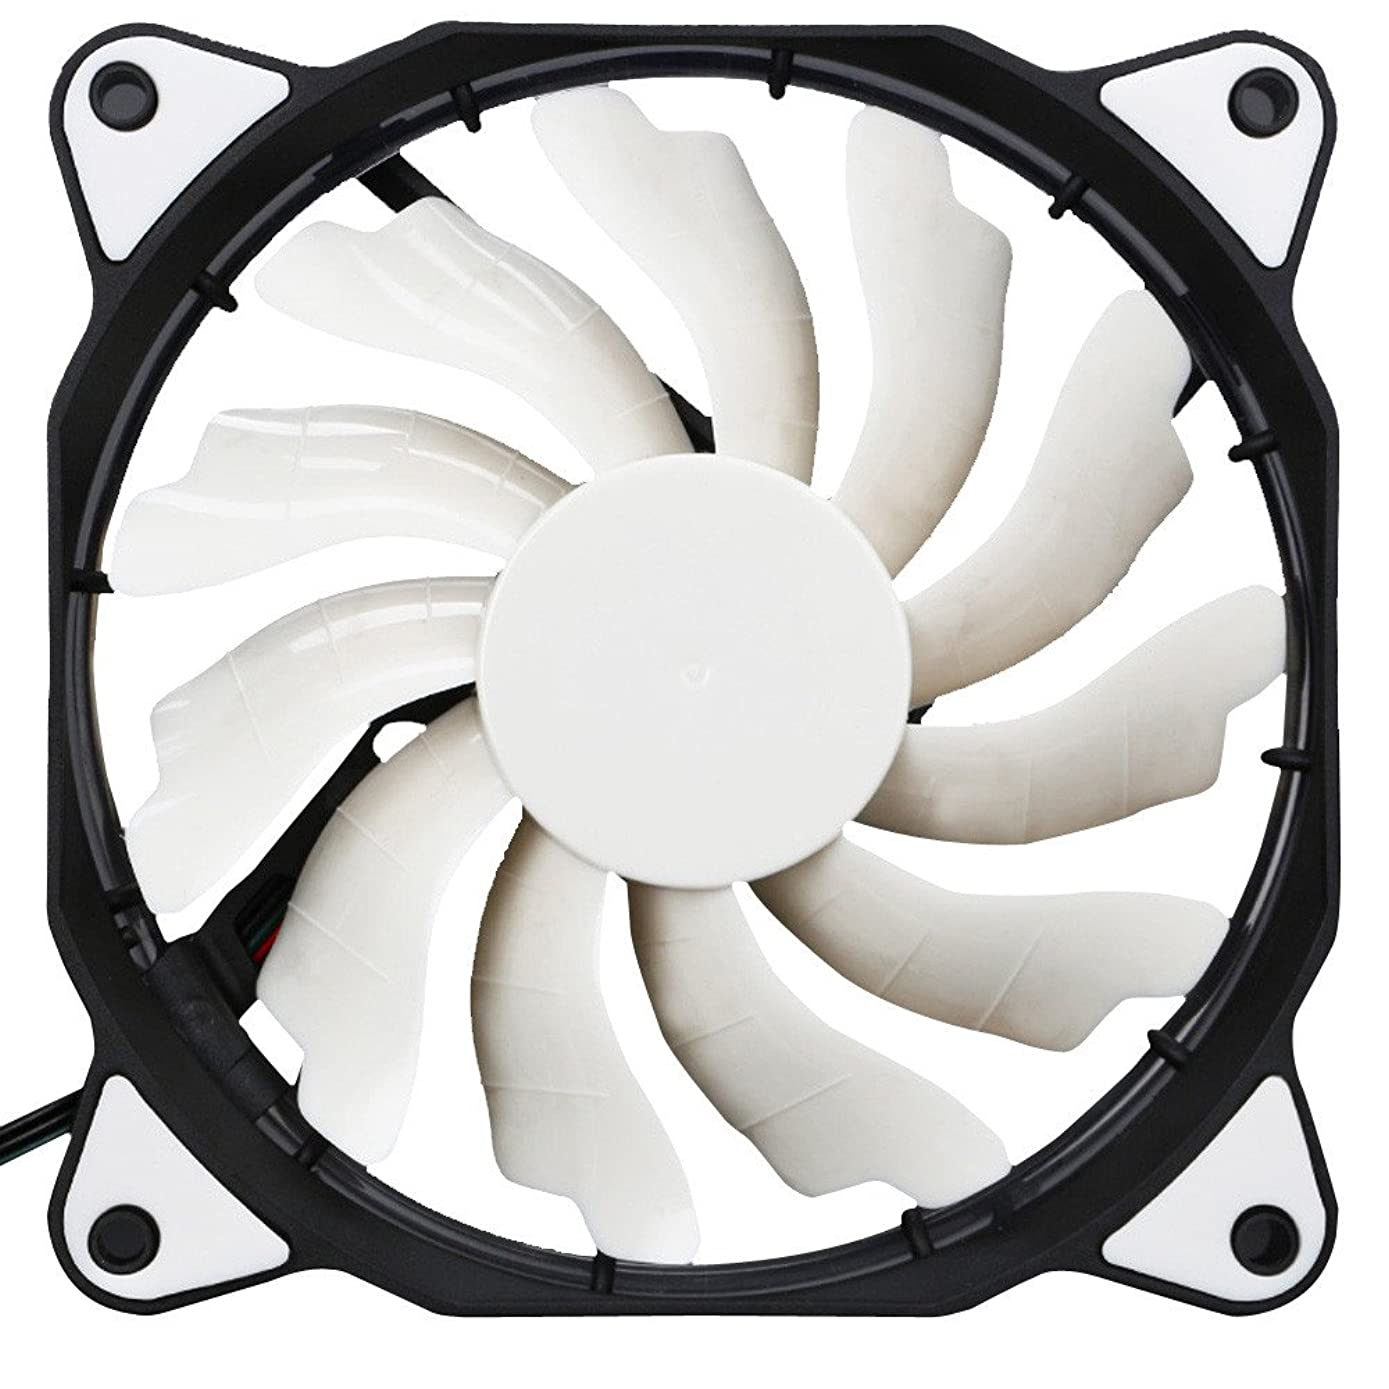 GOVOW-Tech 120mm 12V 3+4pin led Effects Clear Computer Case Fan for Radiator Mod Standard Low Noise Case Fan - Oil Bearing - Innovative Design